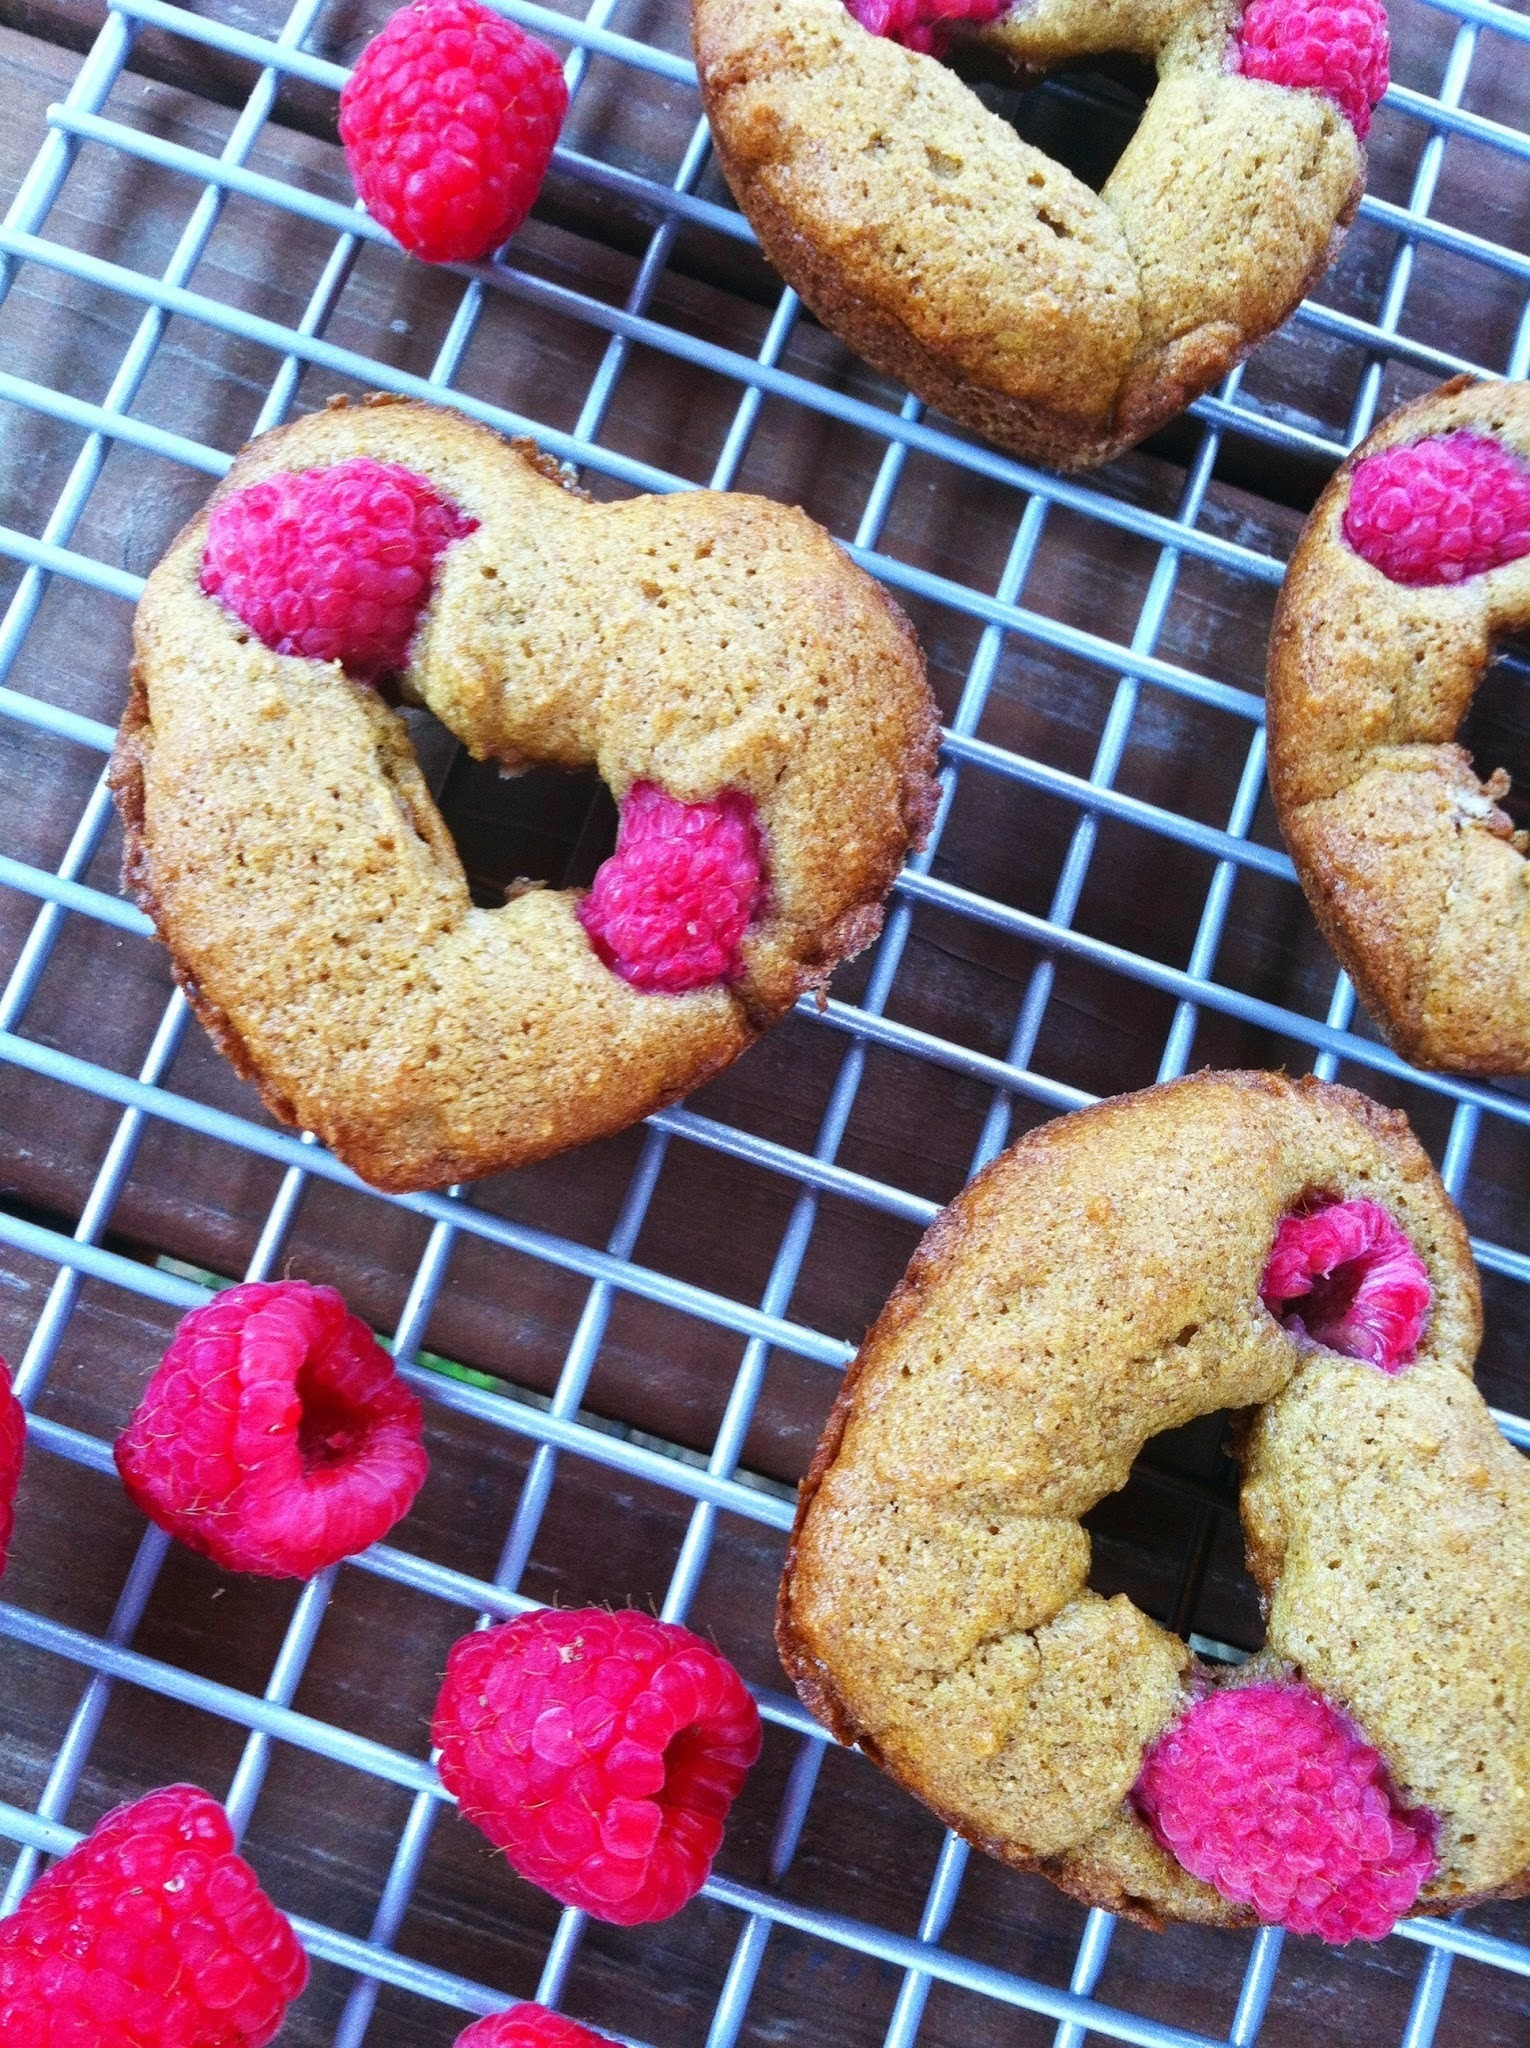 Baked Whole-Wheat Raspberry Doughnuts